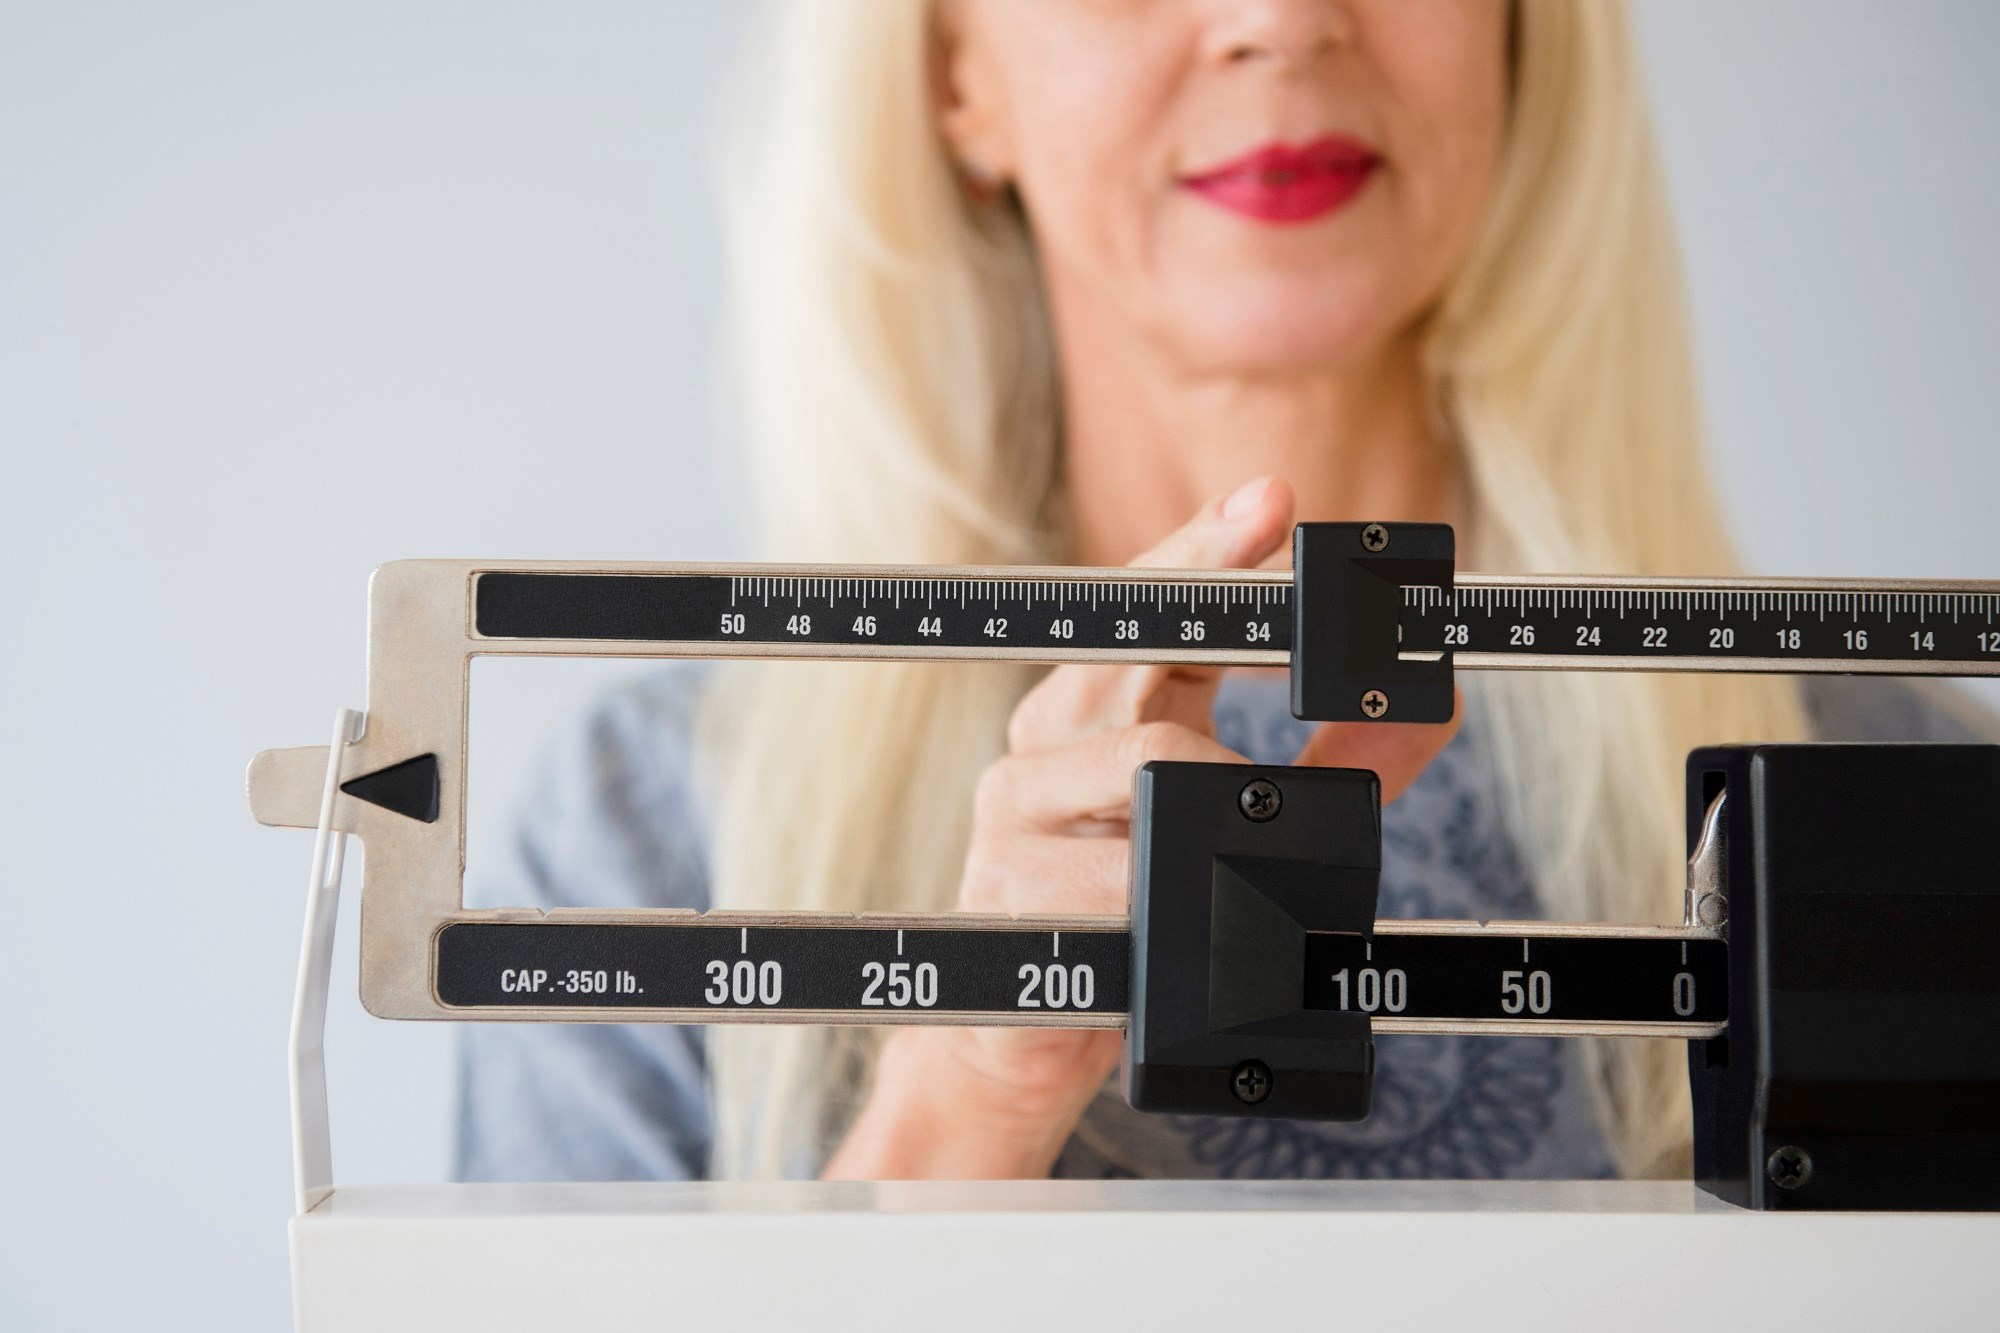 Weight Loss May Reduce Breast Cancer Risk in Postmenopausal Women